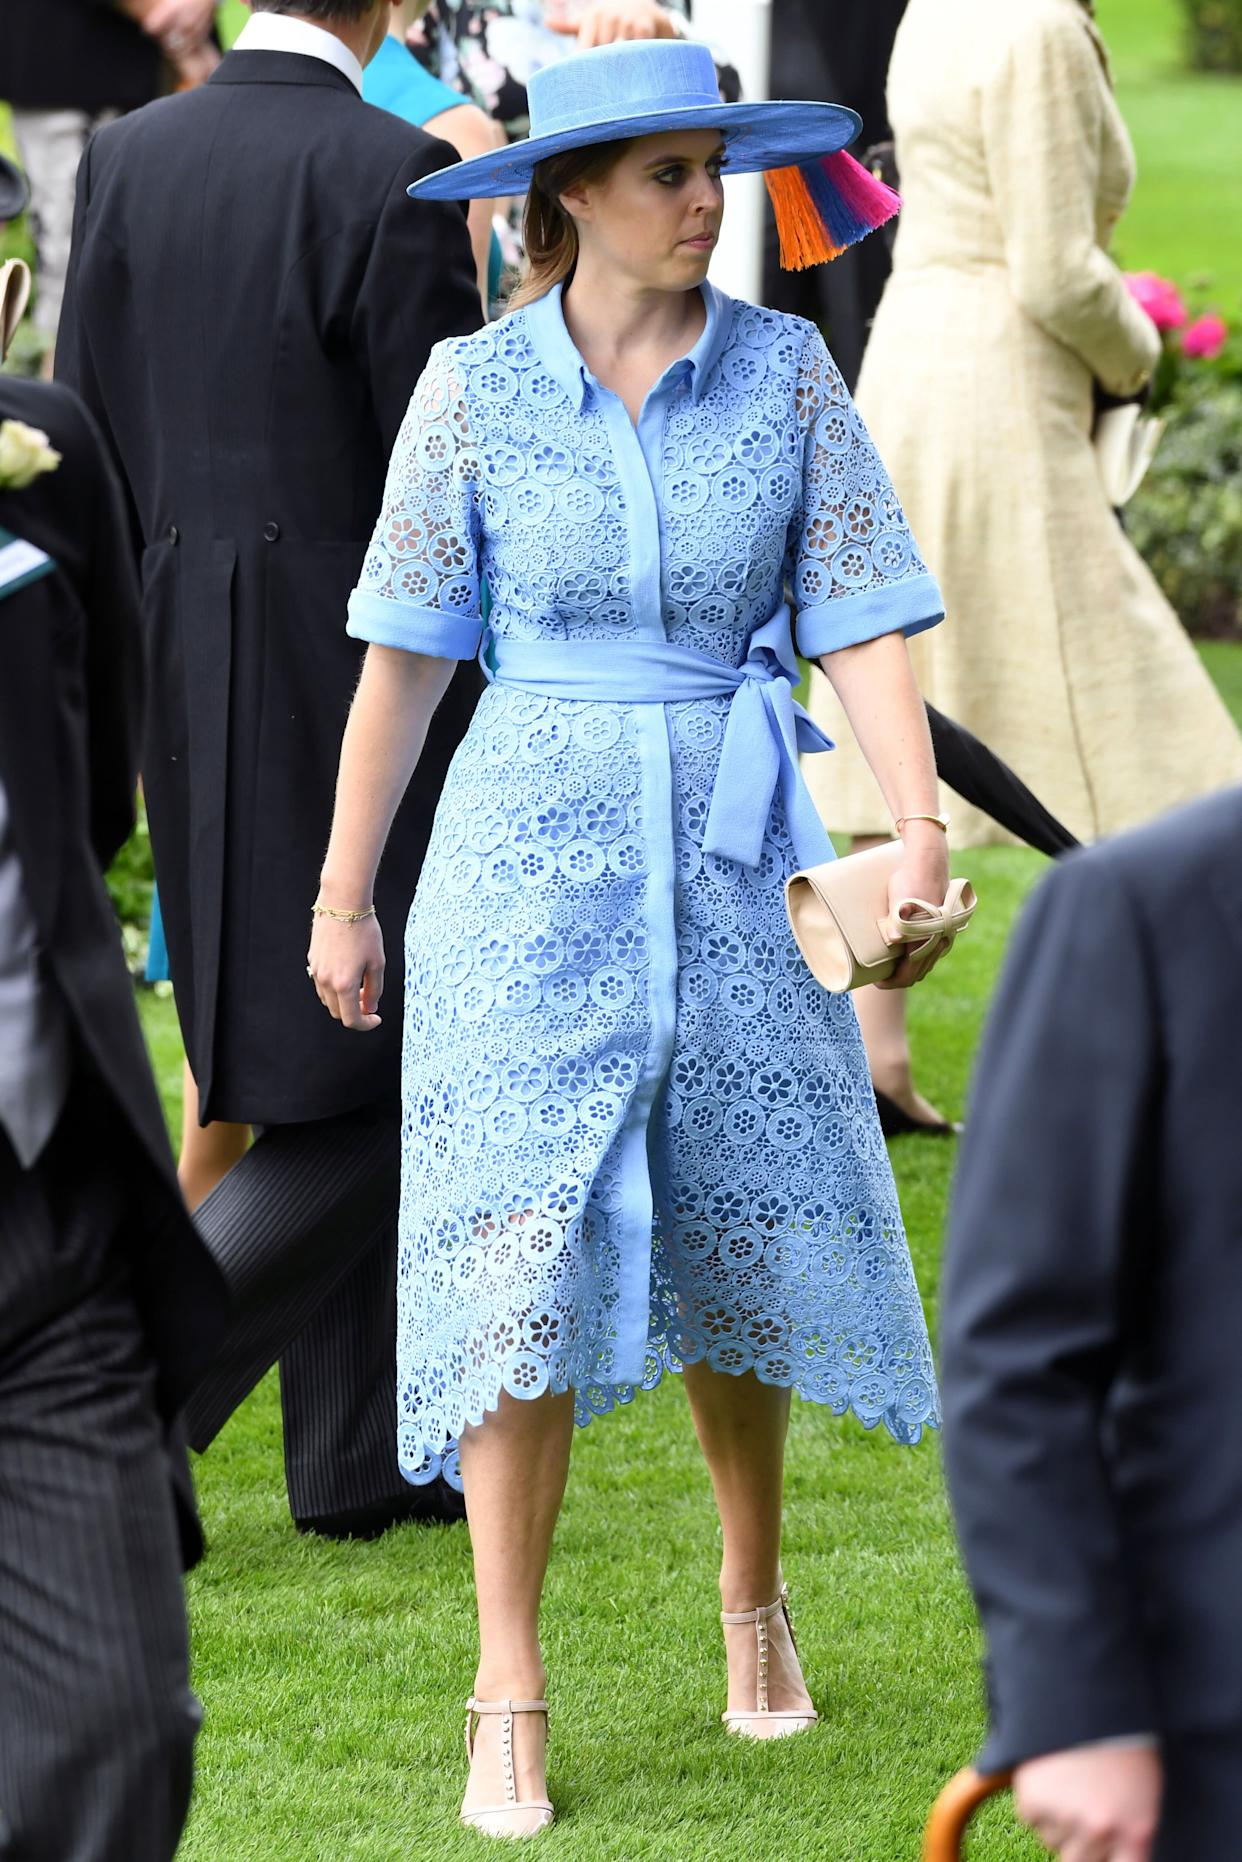 Princess Beatrice of York arriving during day one of Royal Ascot at Ascot Racecourse. (Photo: Doug Peters/EMPICS Entertainment)